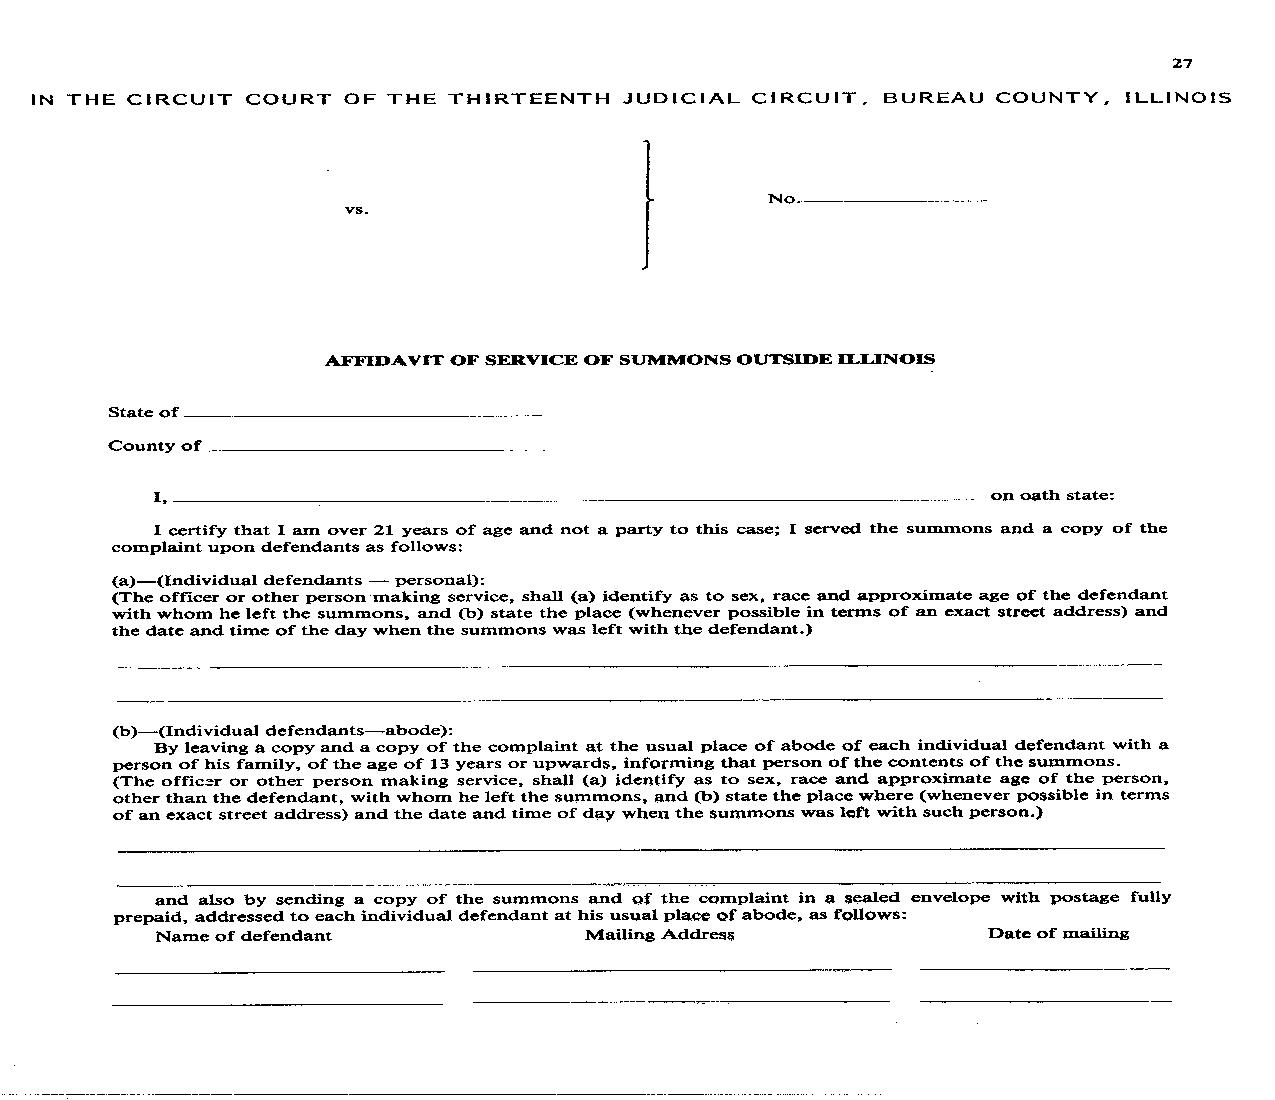 Affidavit Of Service Of Summons Outside Illinois {27} | Pdf Fpdf Doc Docx | Illinois